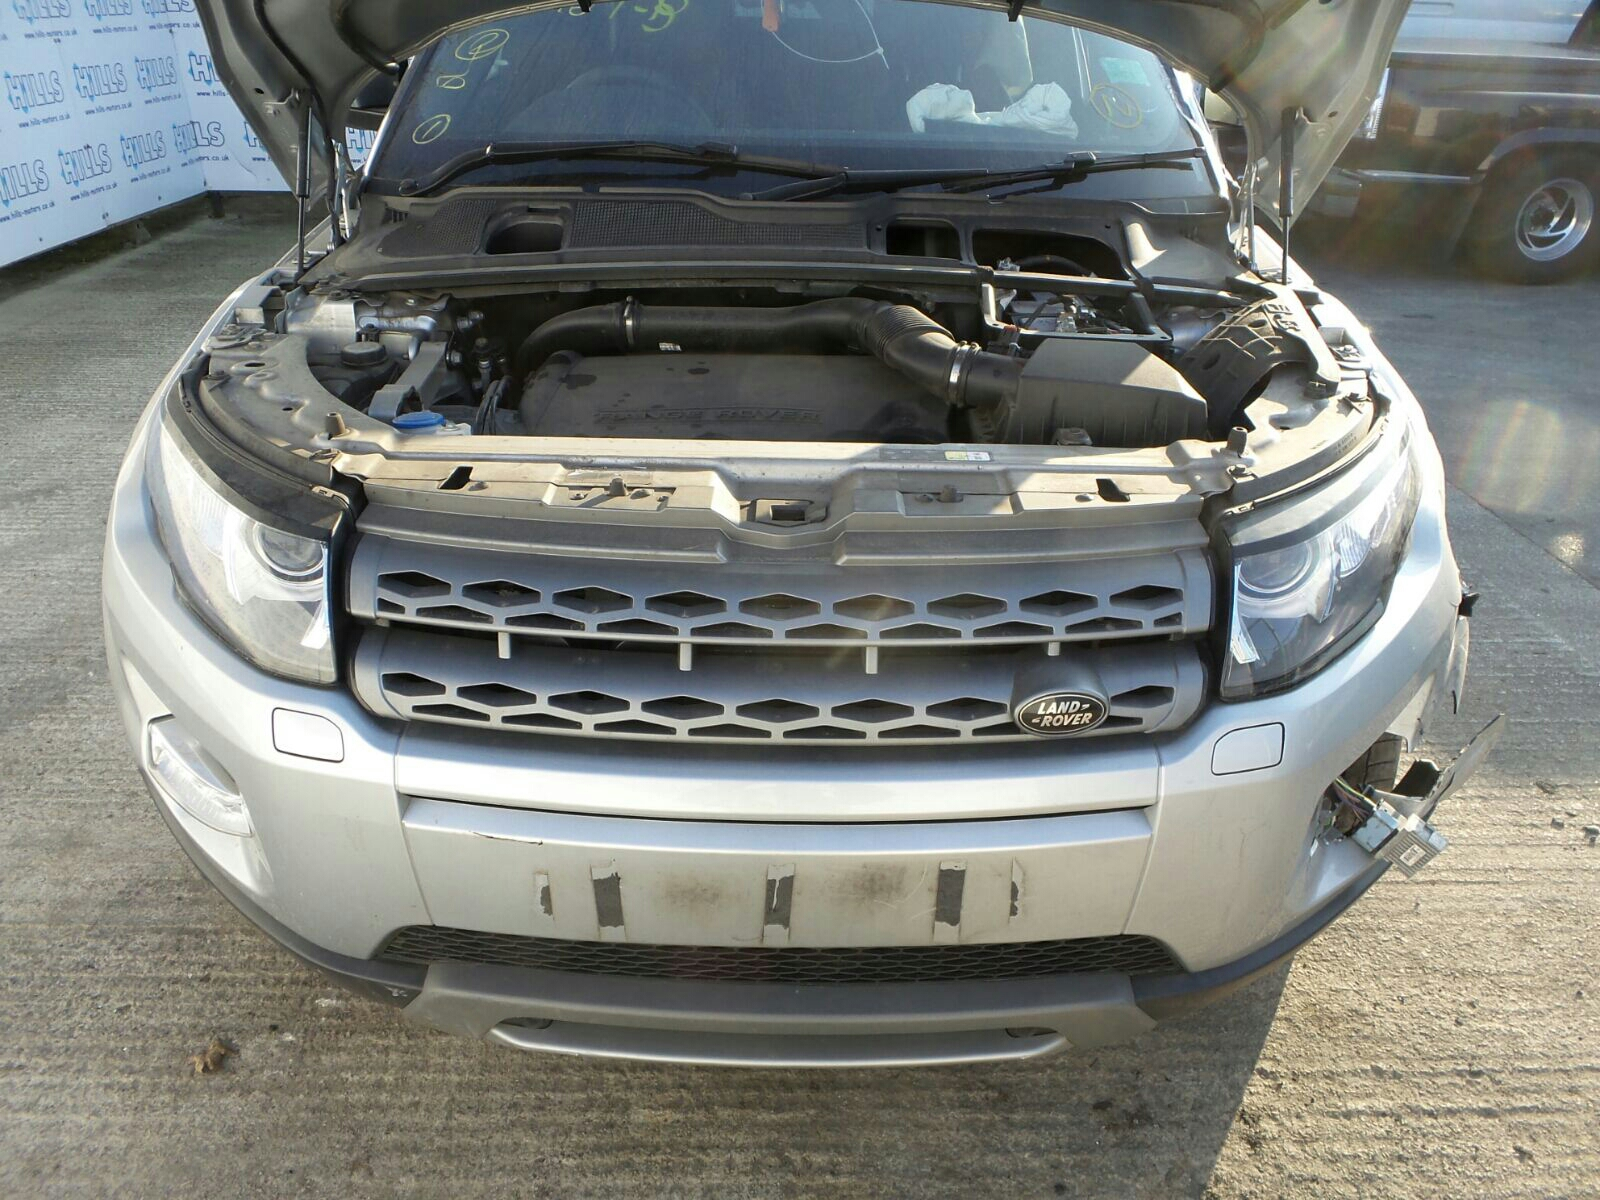 door plus certified pre parts evoque rover pure suv land range landrover owned inventory